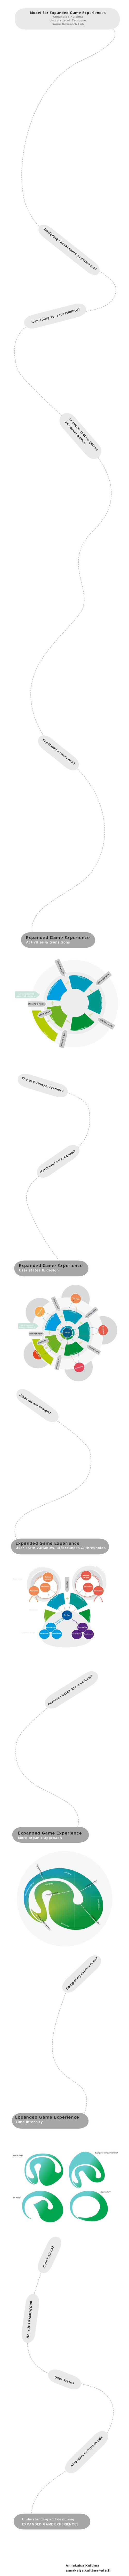 Model for Expanded Game Experiences                                                                                       ...